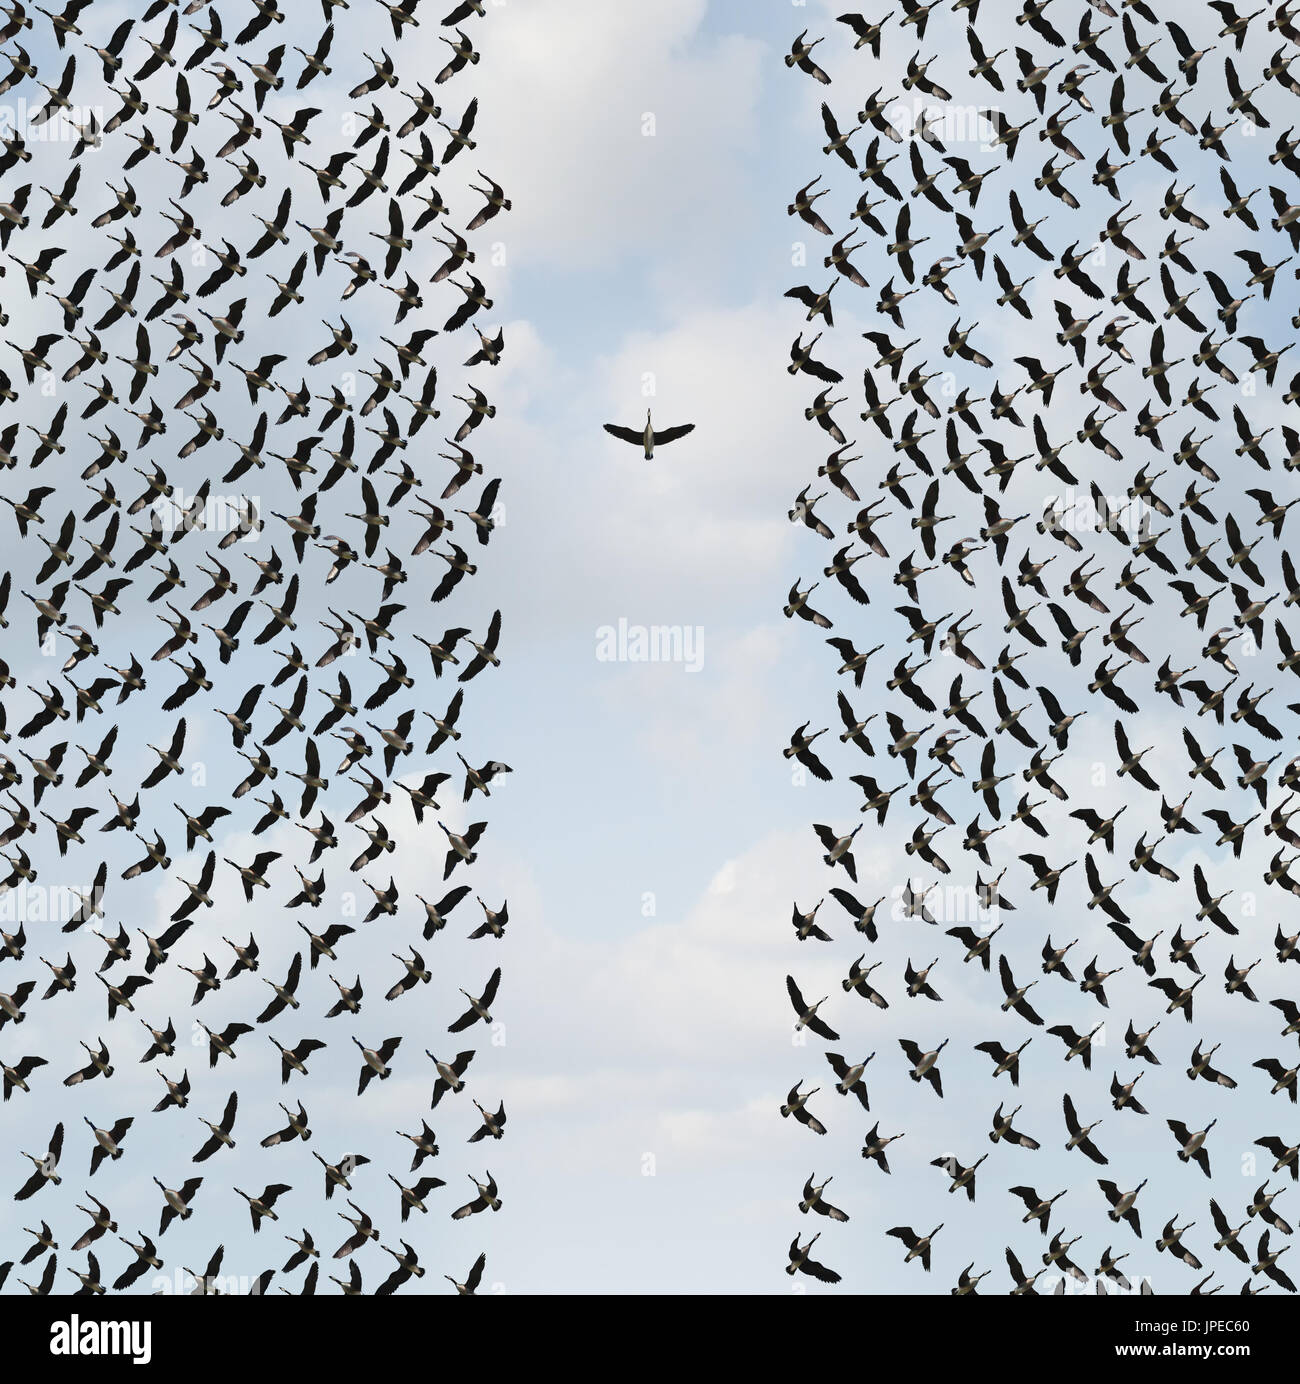 Concept of individualism and Individuality symbol or independent thinker idea and new leadership concept or individual courage as a group of birds. - Stock Image